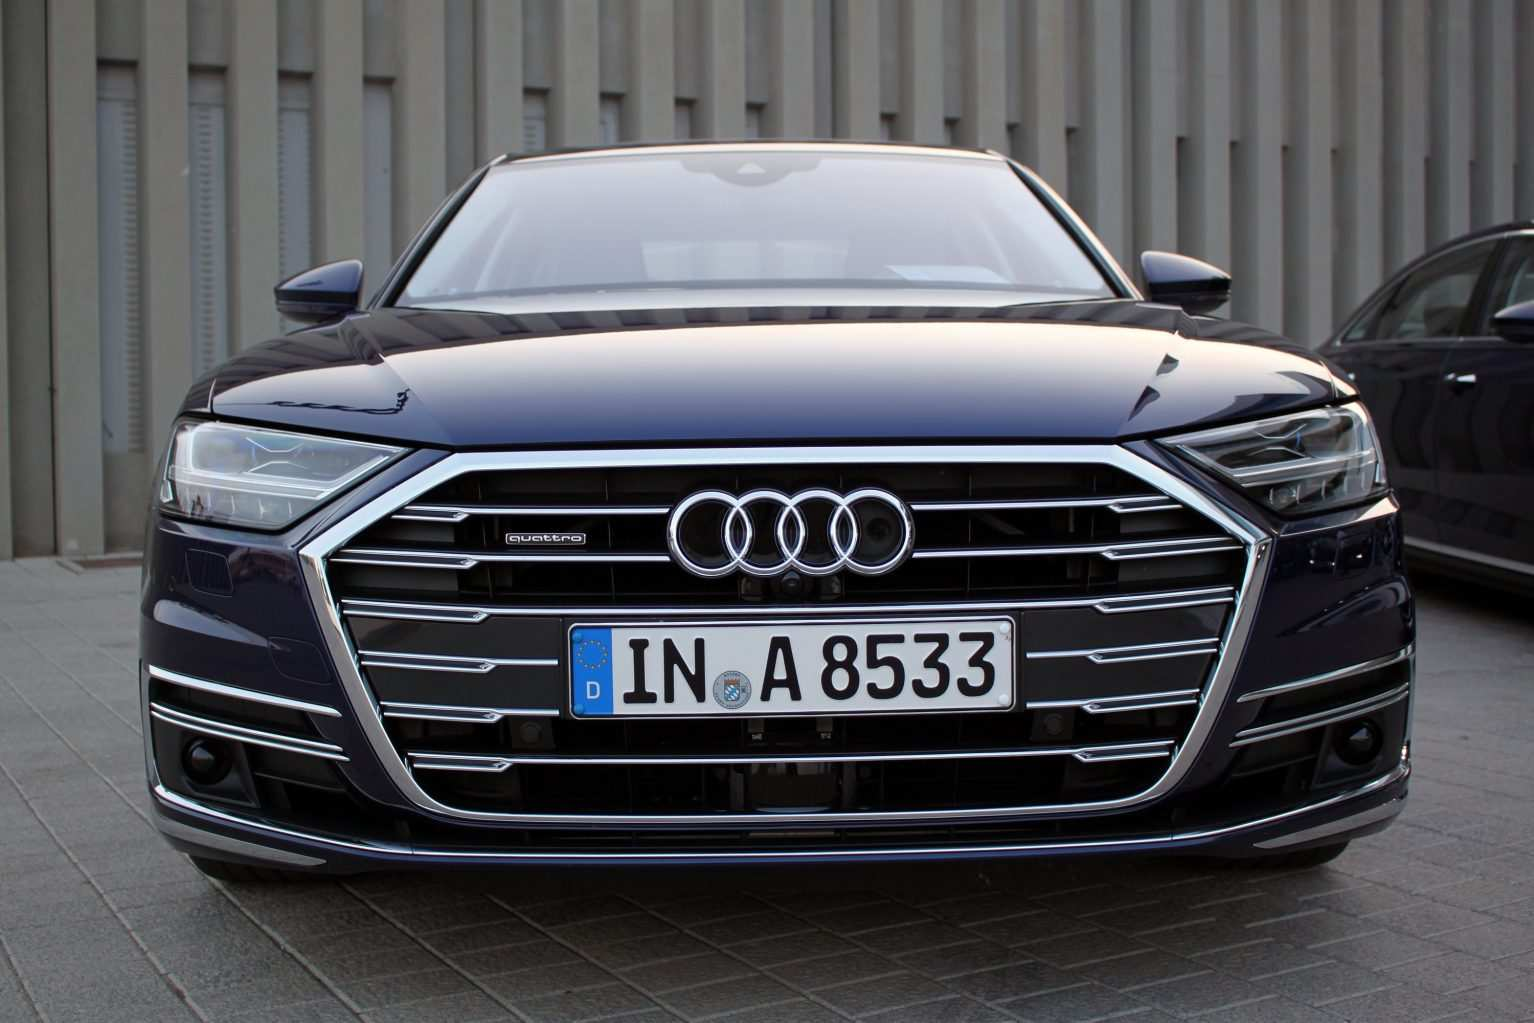 44 Gallery of S8 Audi 2019 Engine Rumors by S8 Audi 2019 Engine